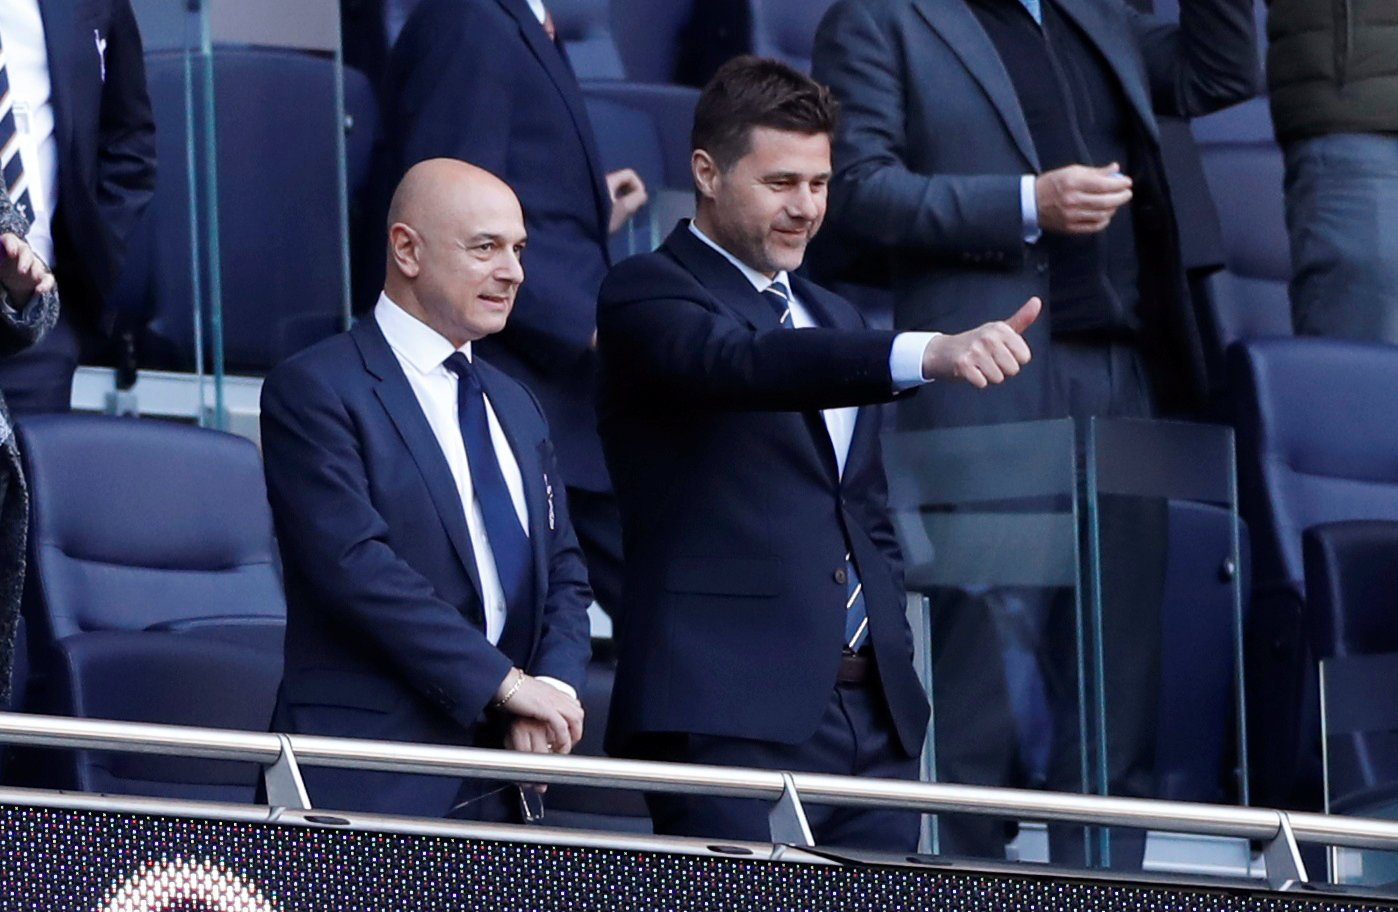 2019 03 24T150753Z 1245296143 RC1419DA0B60 RTRMADP 3 SOCCER ENGLAND TOT SOU UNDER18 - Three potential explanations for Pochettino & Levy's differing stances on Spurs star - opinion